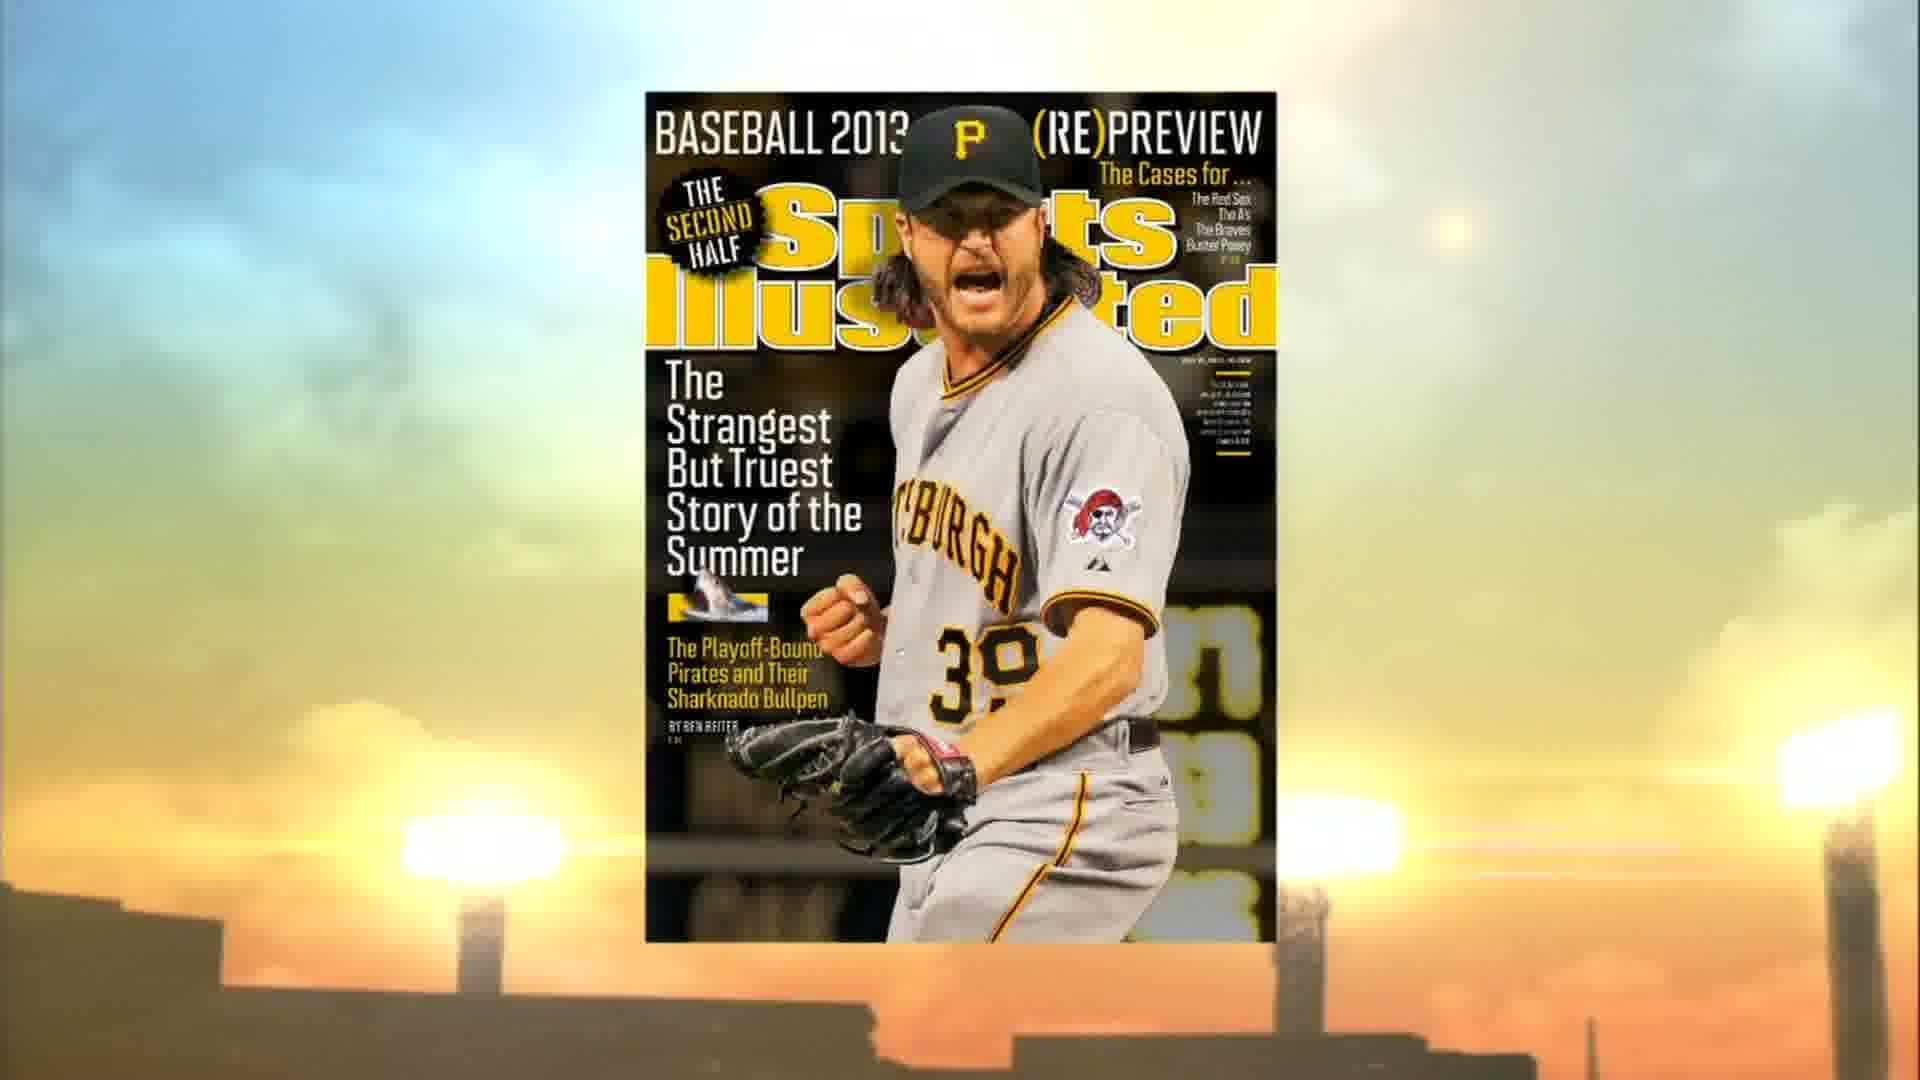 Jason Grilli was announced as the next Sports Illustrated cover subject during the All-Star Game.